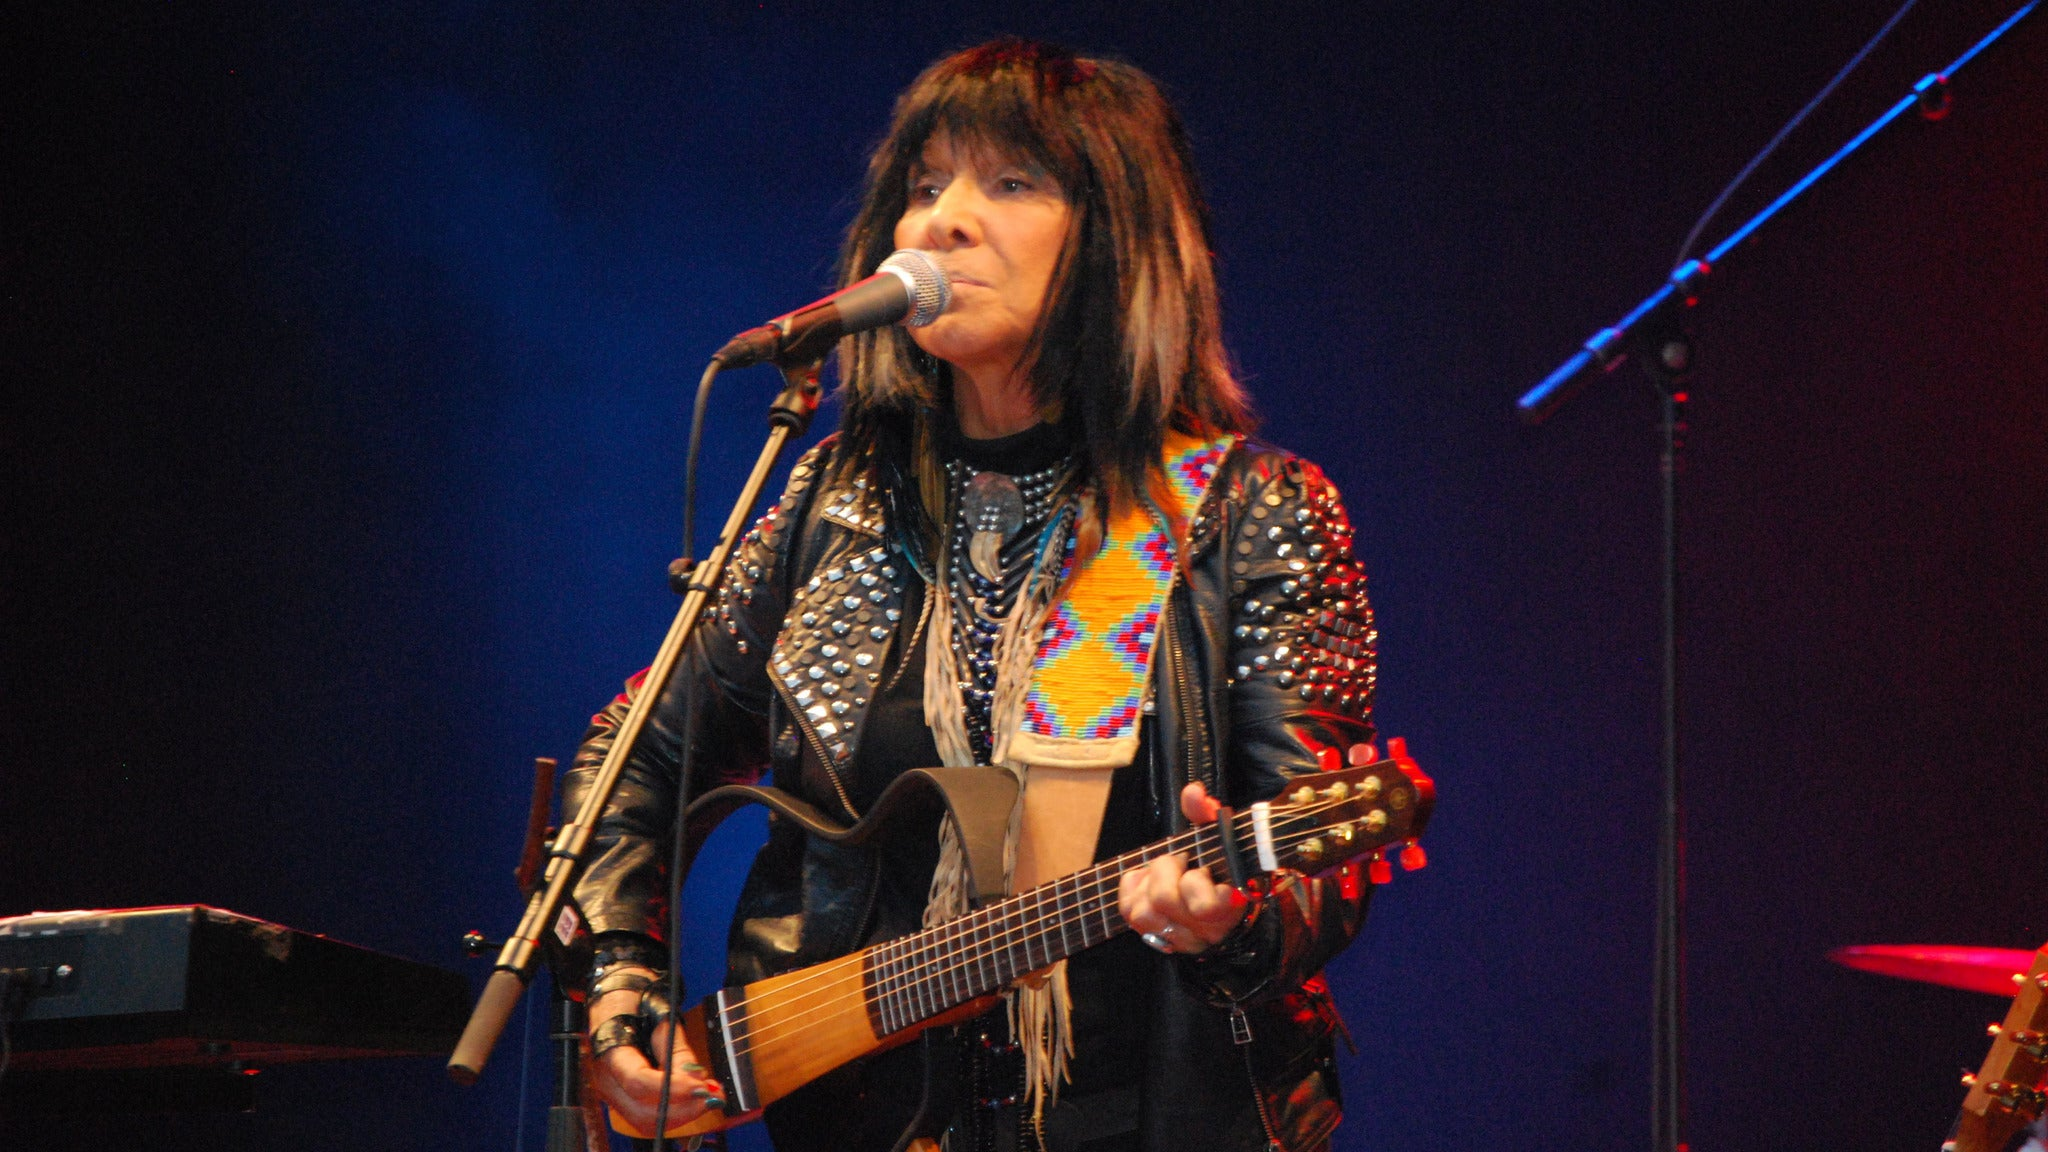 Buffy Sainte-Marie at Bing Crosby Theatre